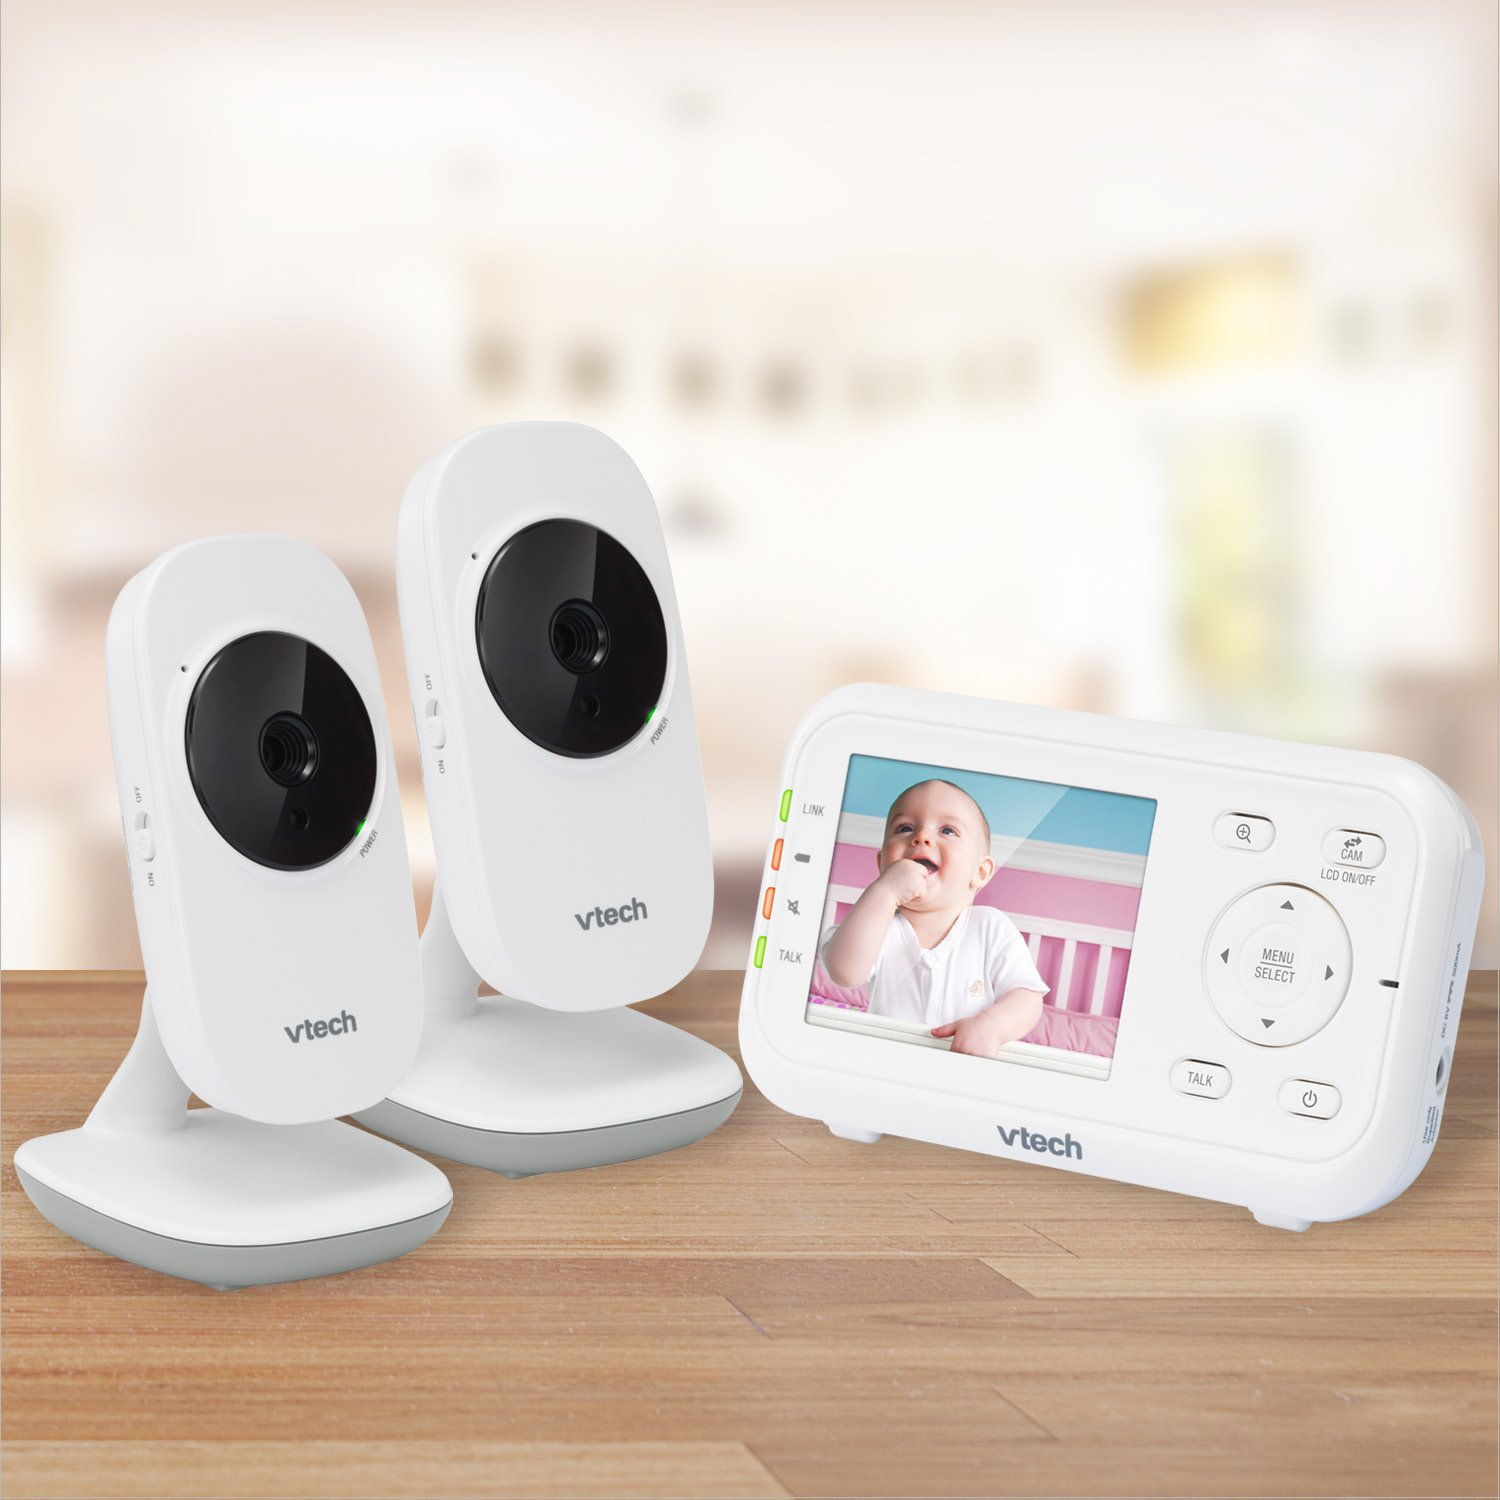 VTech VM3252-2 Digital Video Baby Monitor with 2.8 LCD 2 Cameras and Automatic Night Vision, 1 Count, White